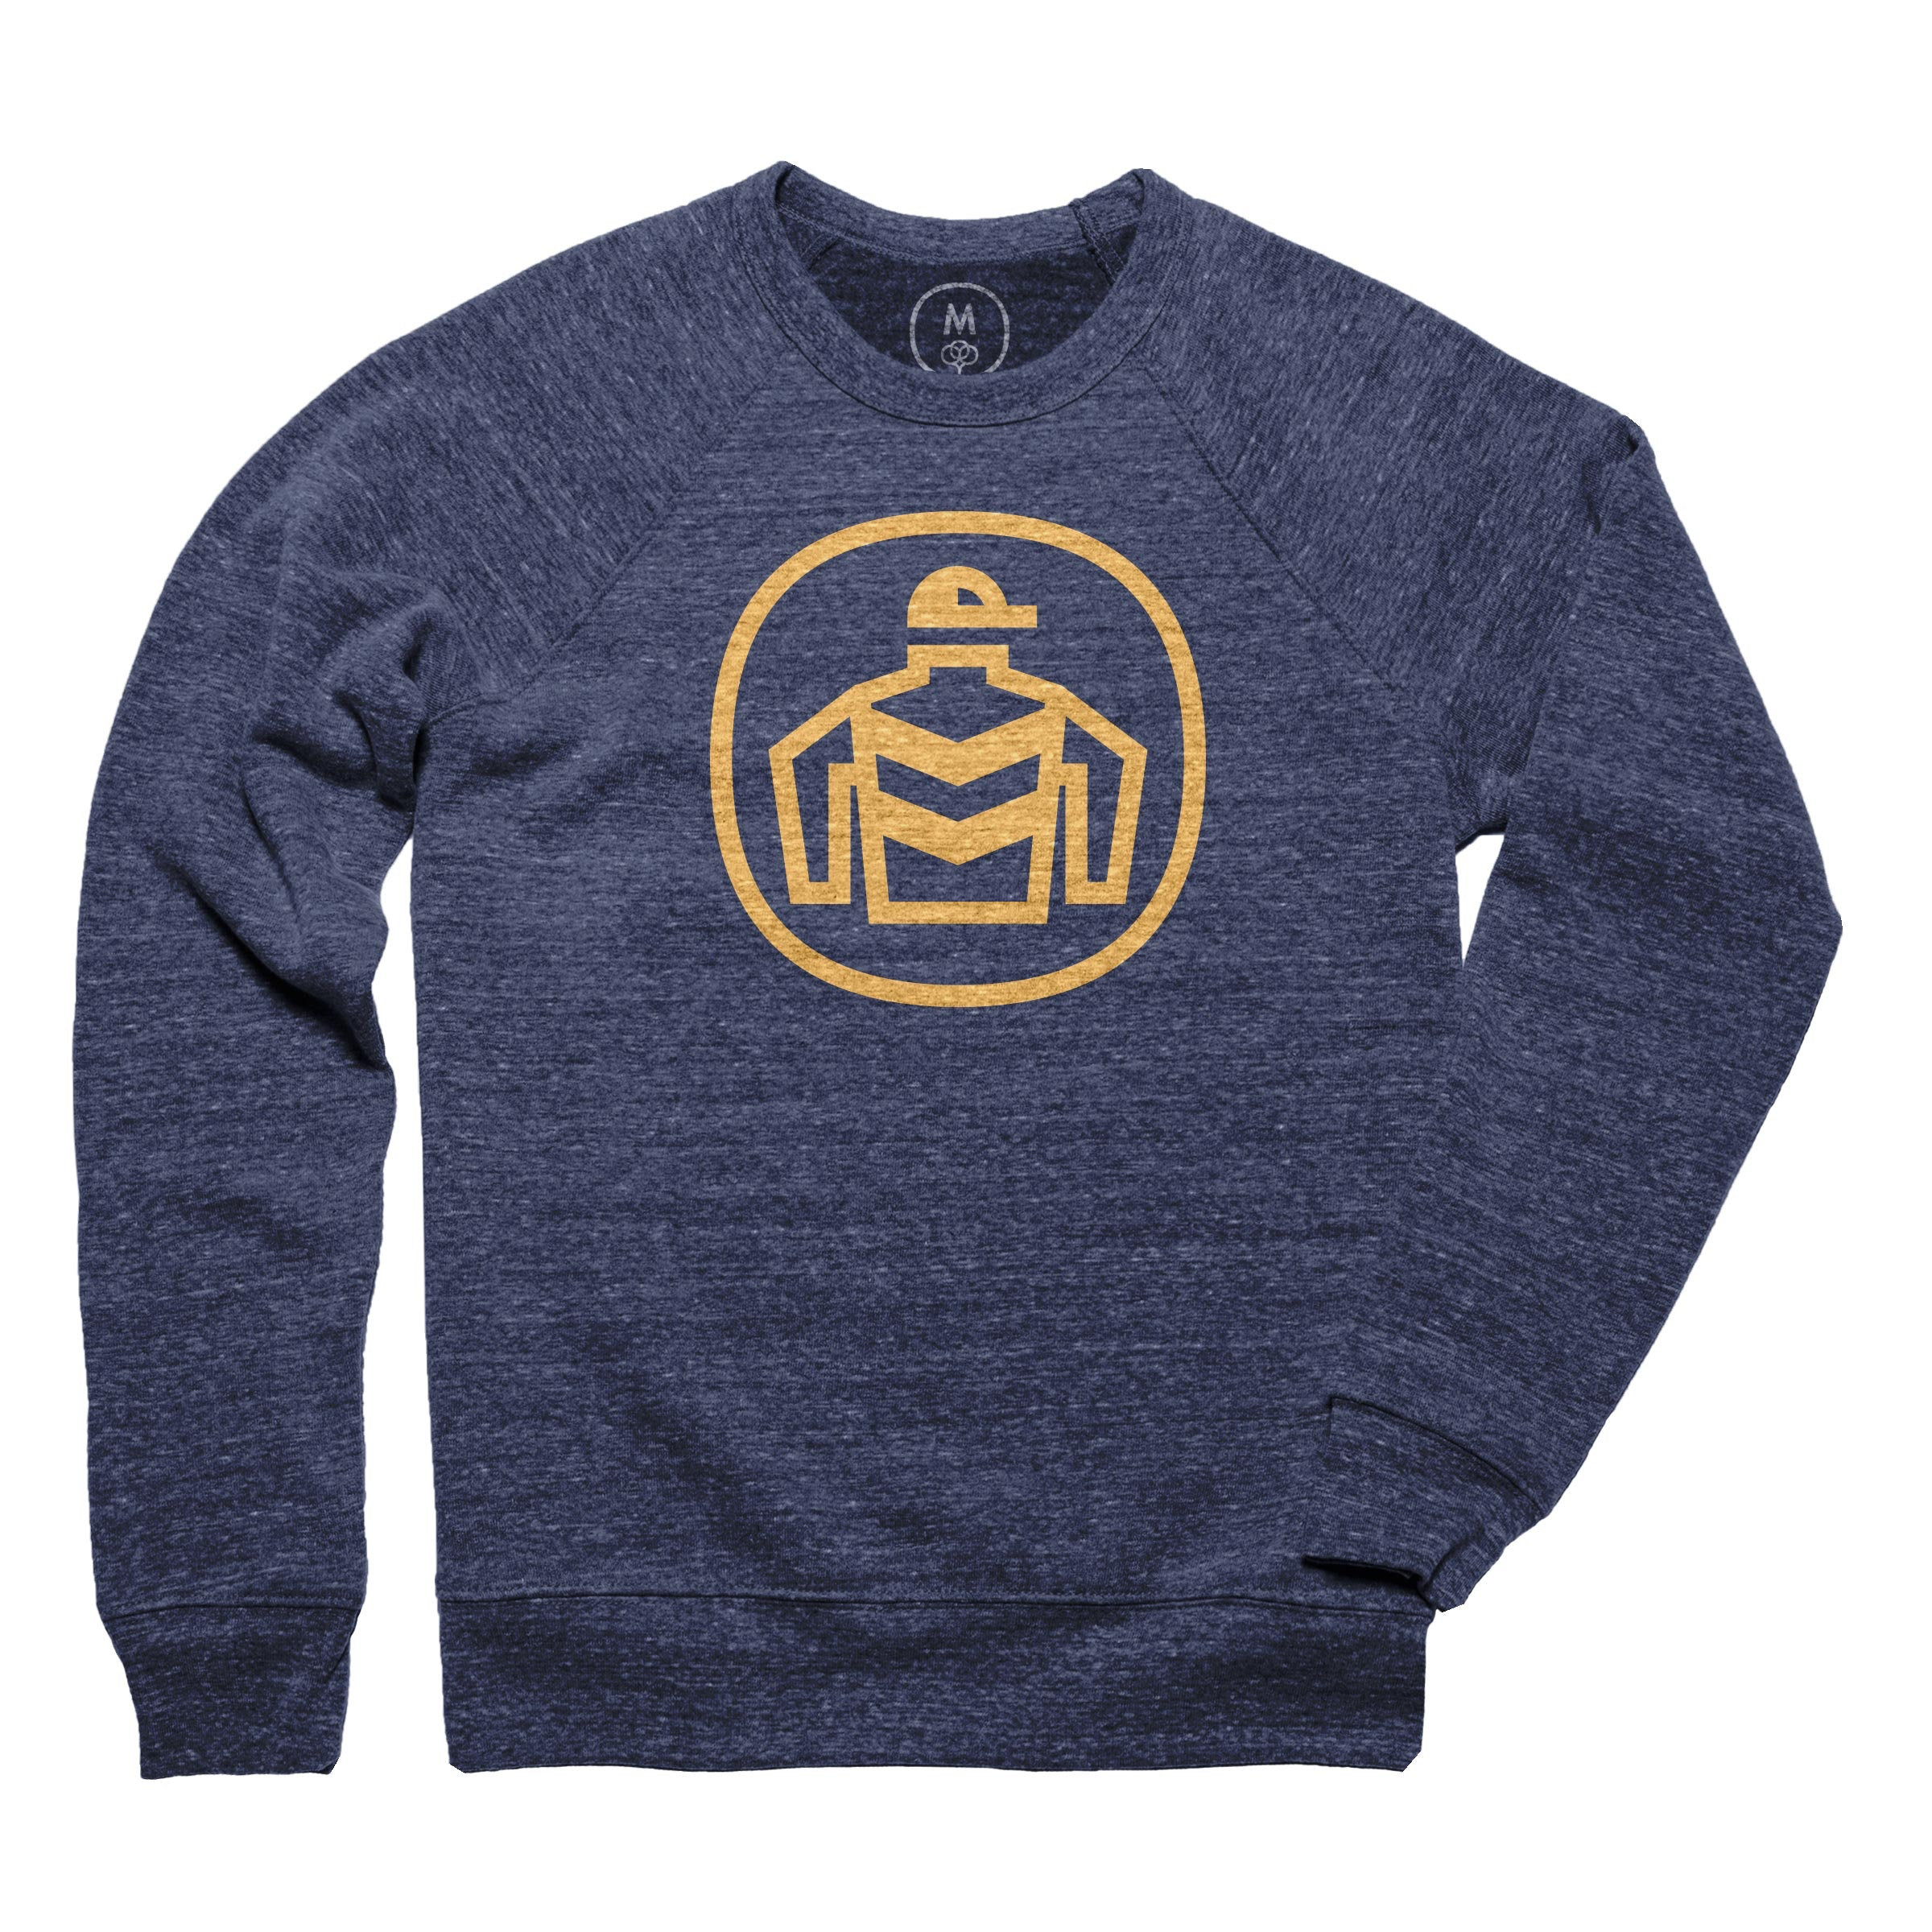 Superb-y Derby Pullover Crewneck